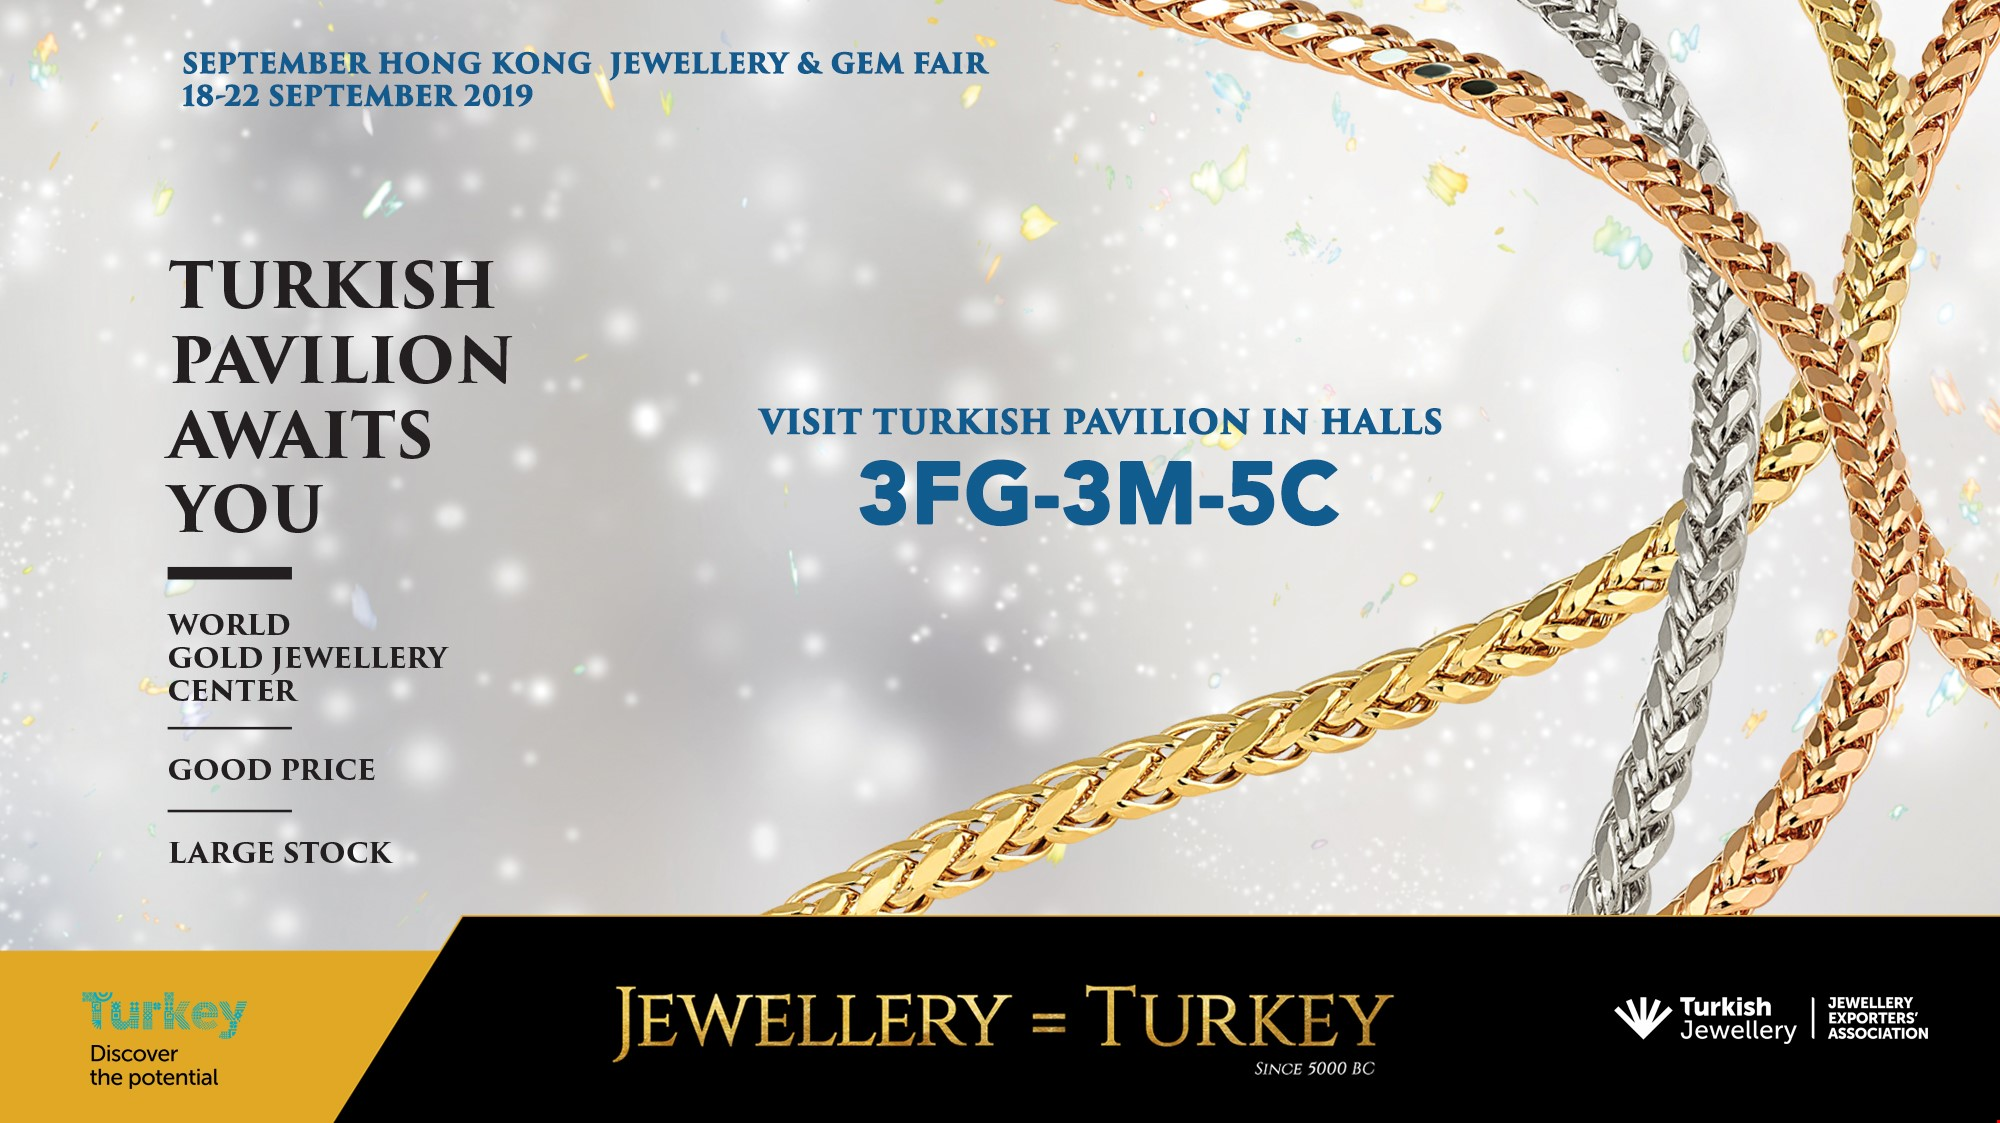 Turkish Pavilion Awaits You in September Hong Kong Jewellery and Gem Fair